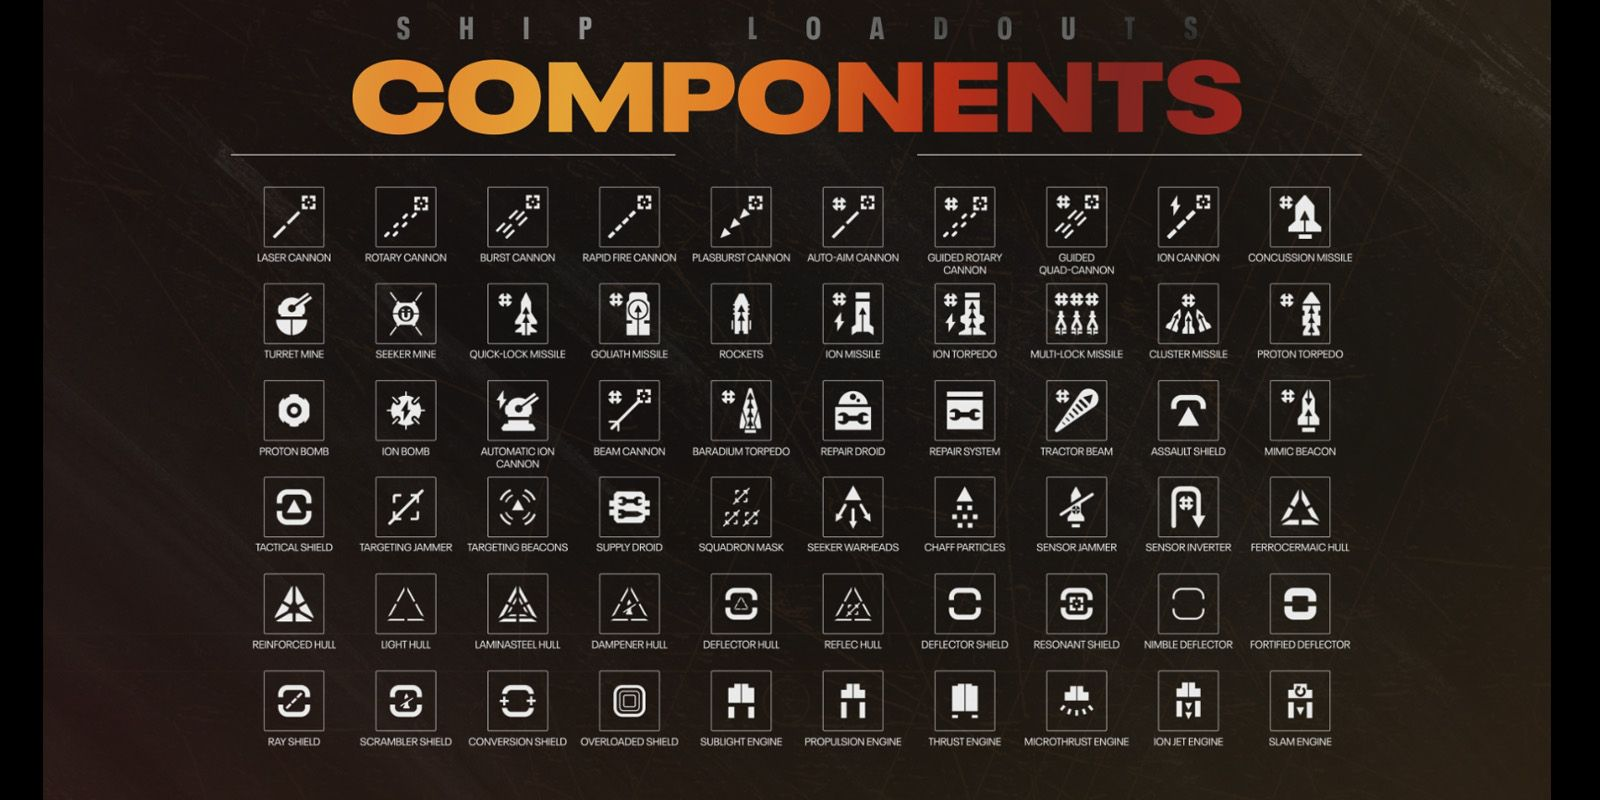 Star-Wars-Squadrons-Ship-Loadouts-Components.jpg?q=50&fit=crop&w=1920&h=1080&dpr=1.5